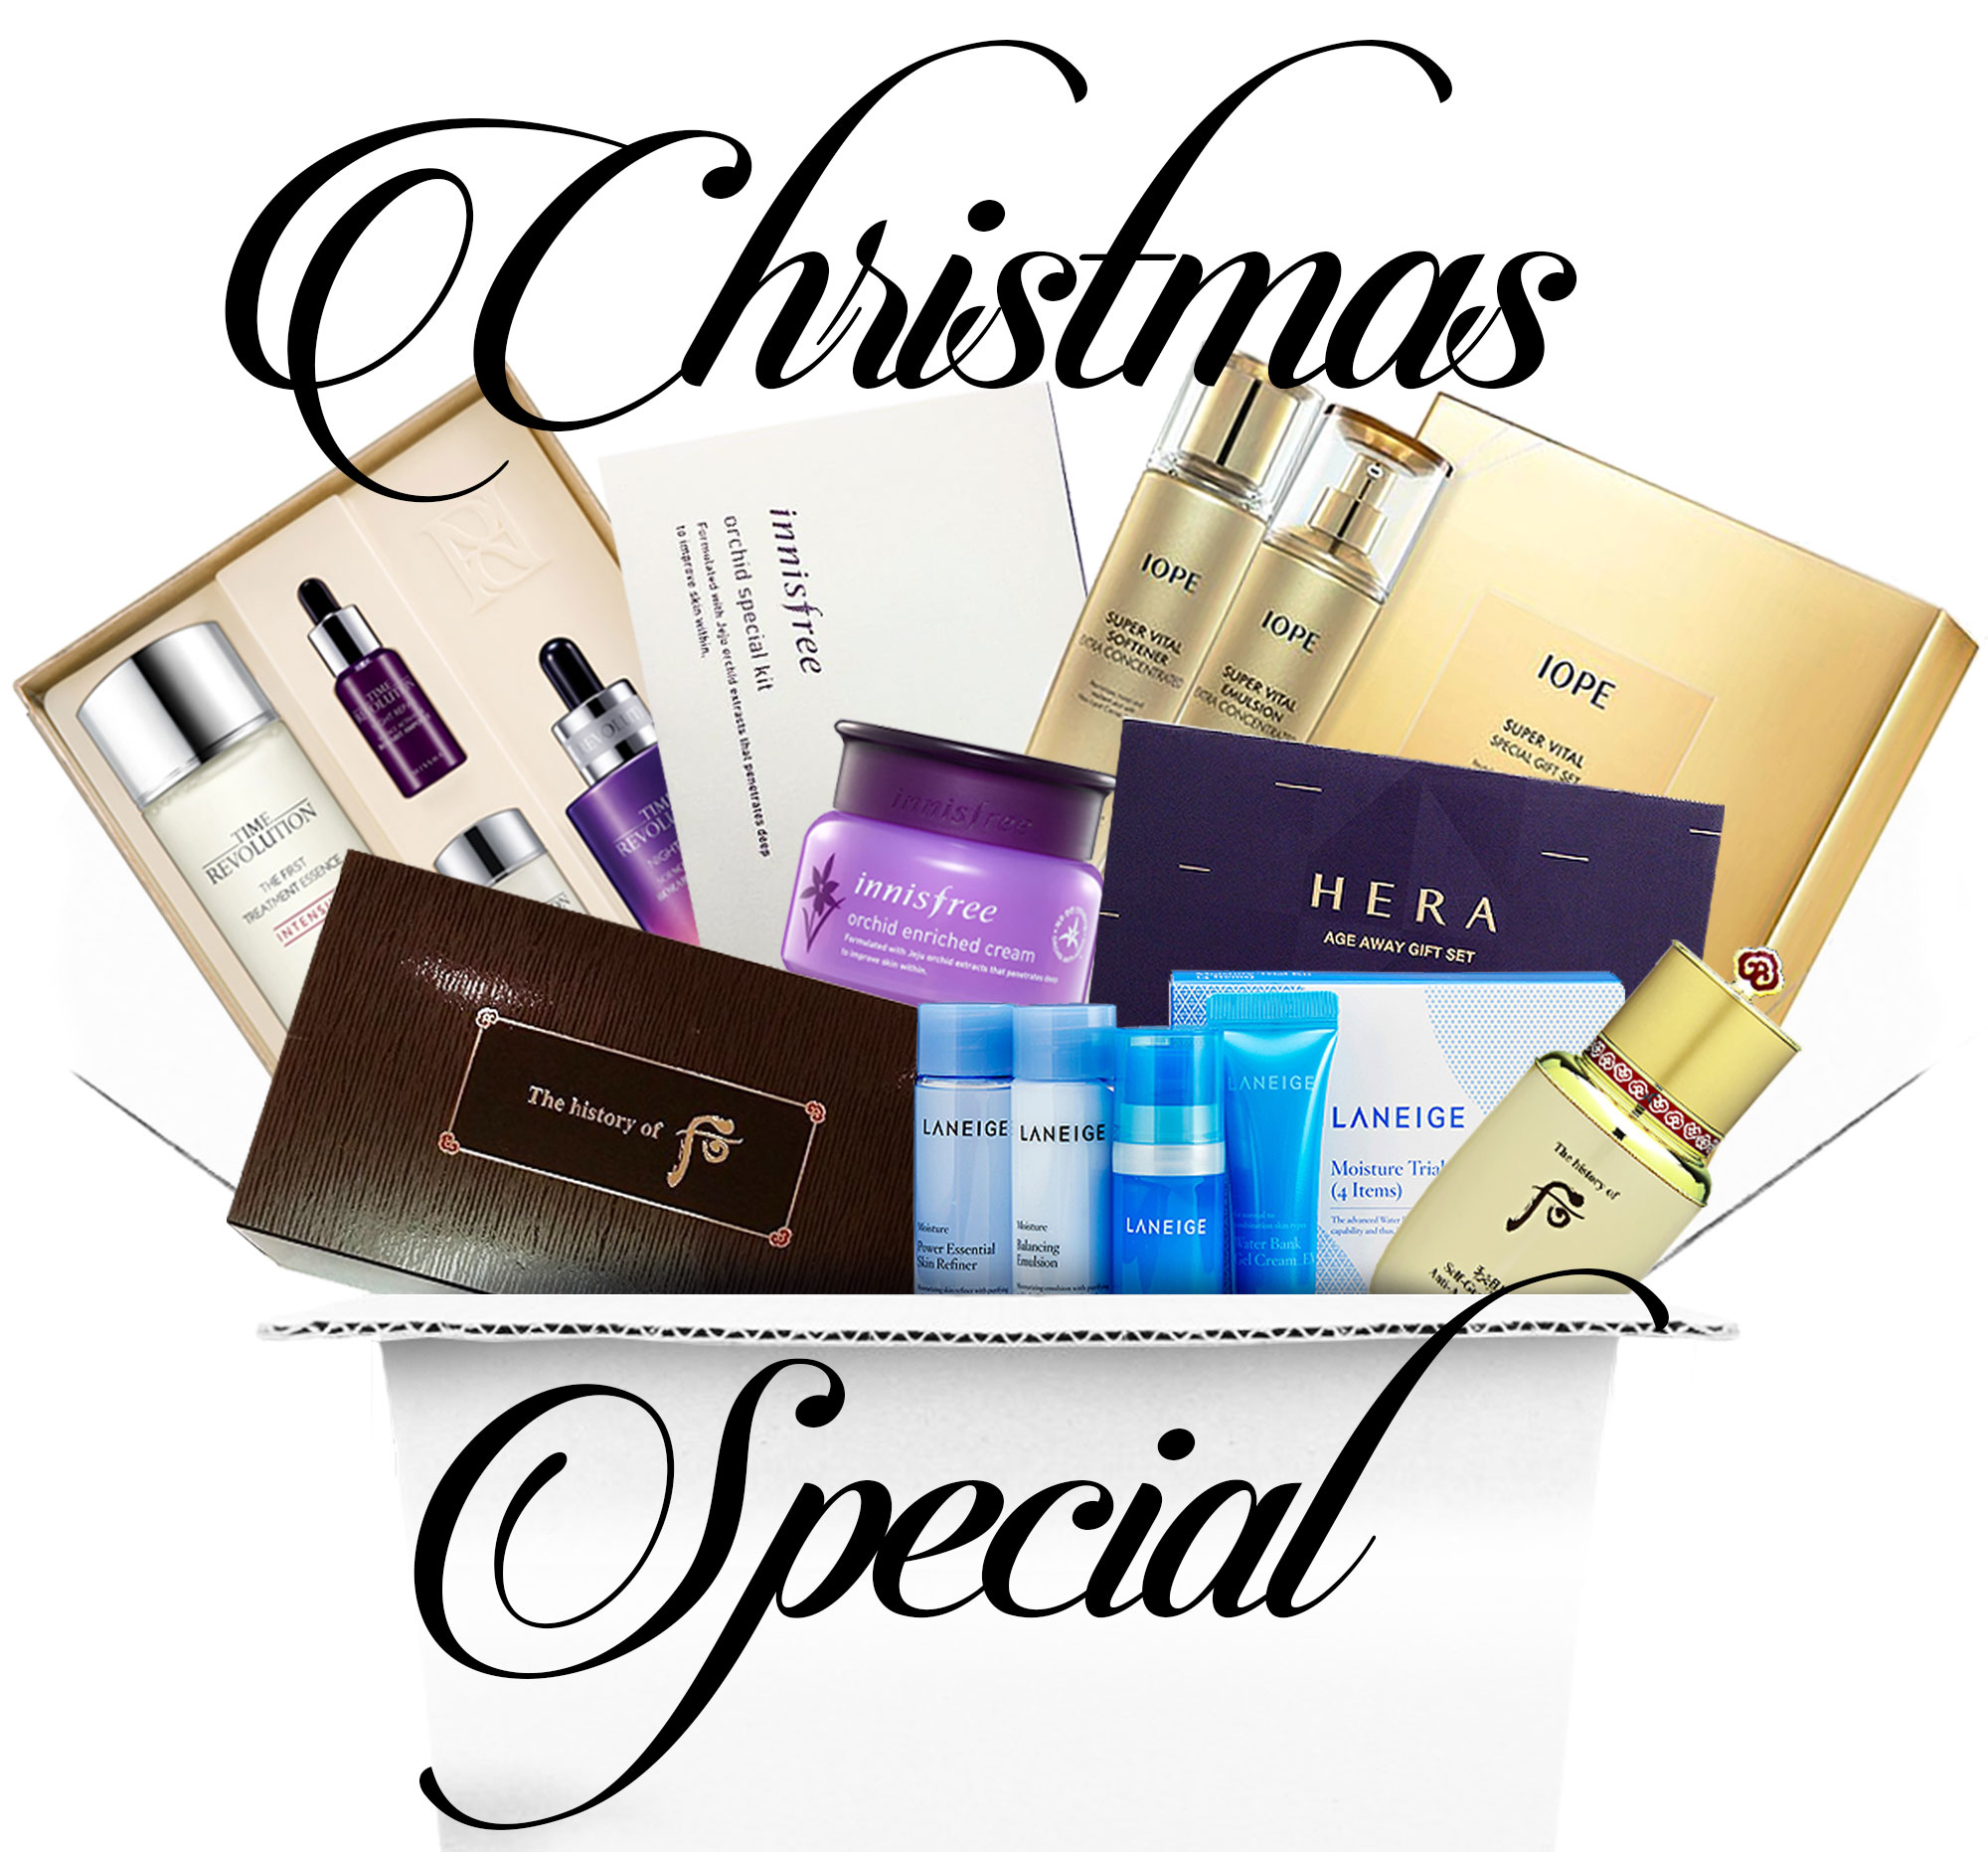 Best Christmas gifts ideas Korean skin care & makeup for all ages & skin types K-beauty Blog Europe